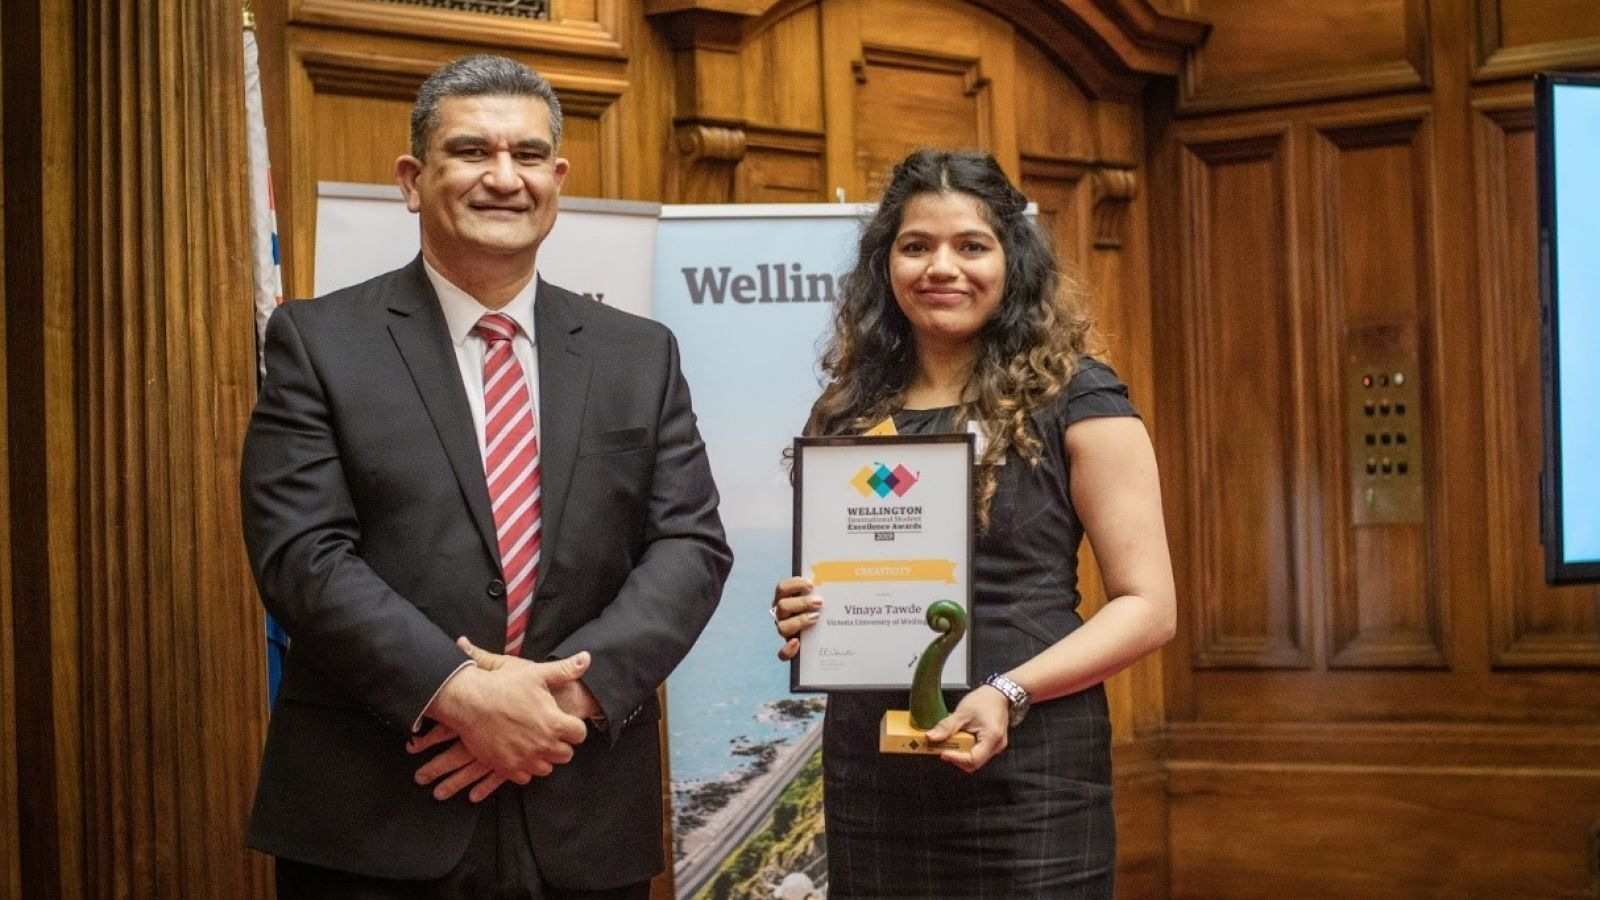 Vinaya Tawde accepts her award from Paul Eagle MP during the Awards Ceremony in the Great Hall, Parliament Buildings